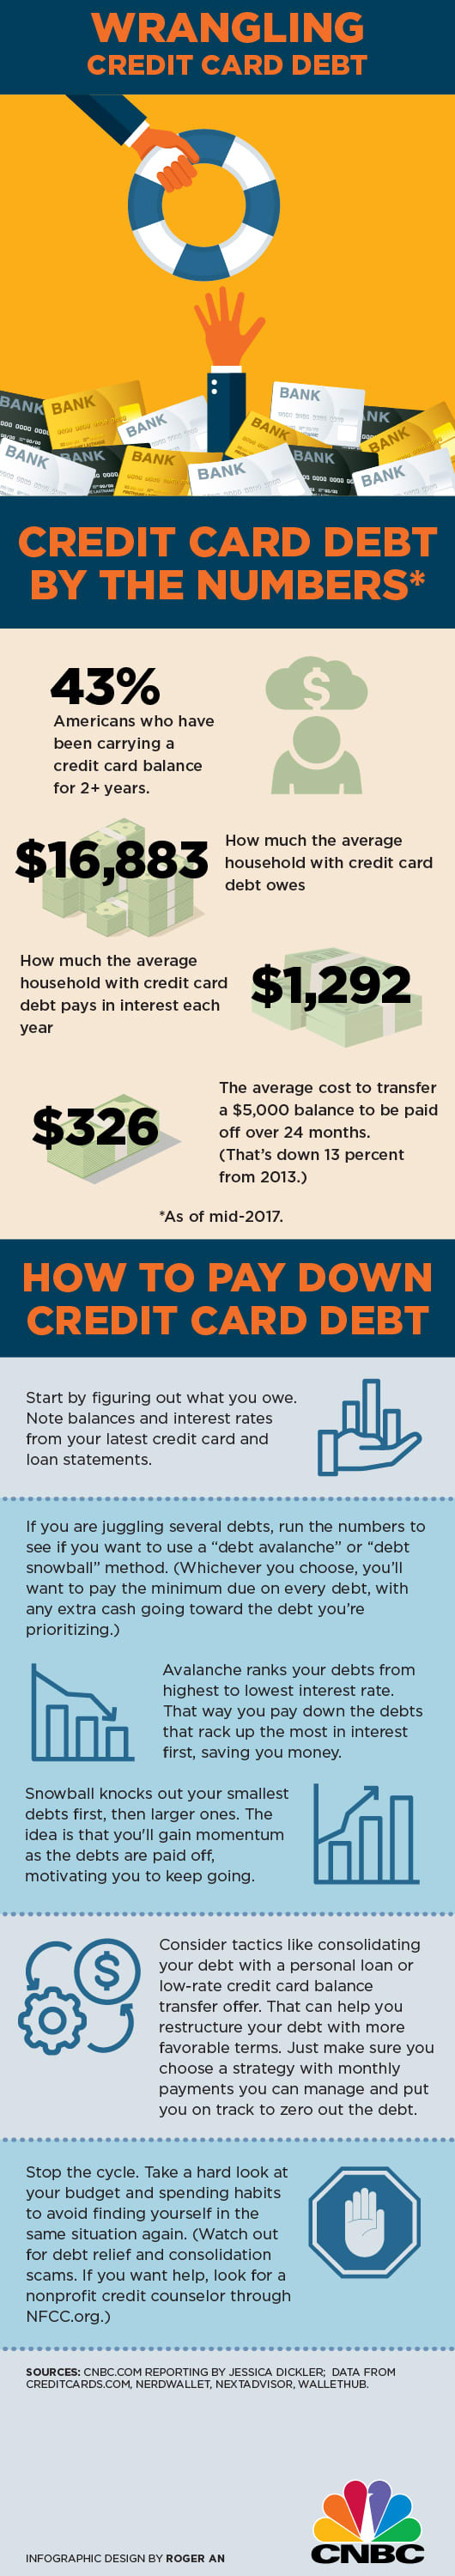 Paying down debt INFOGRAPHIC